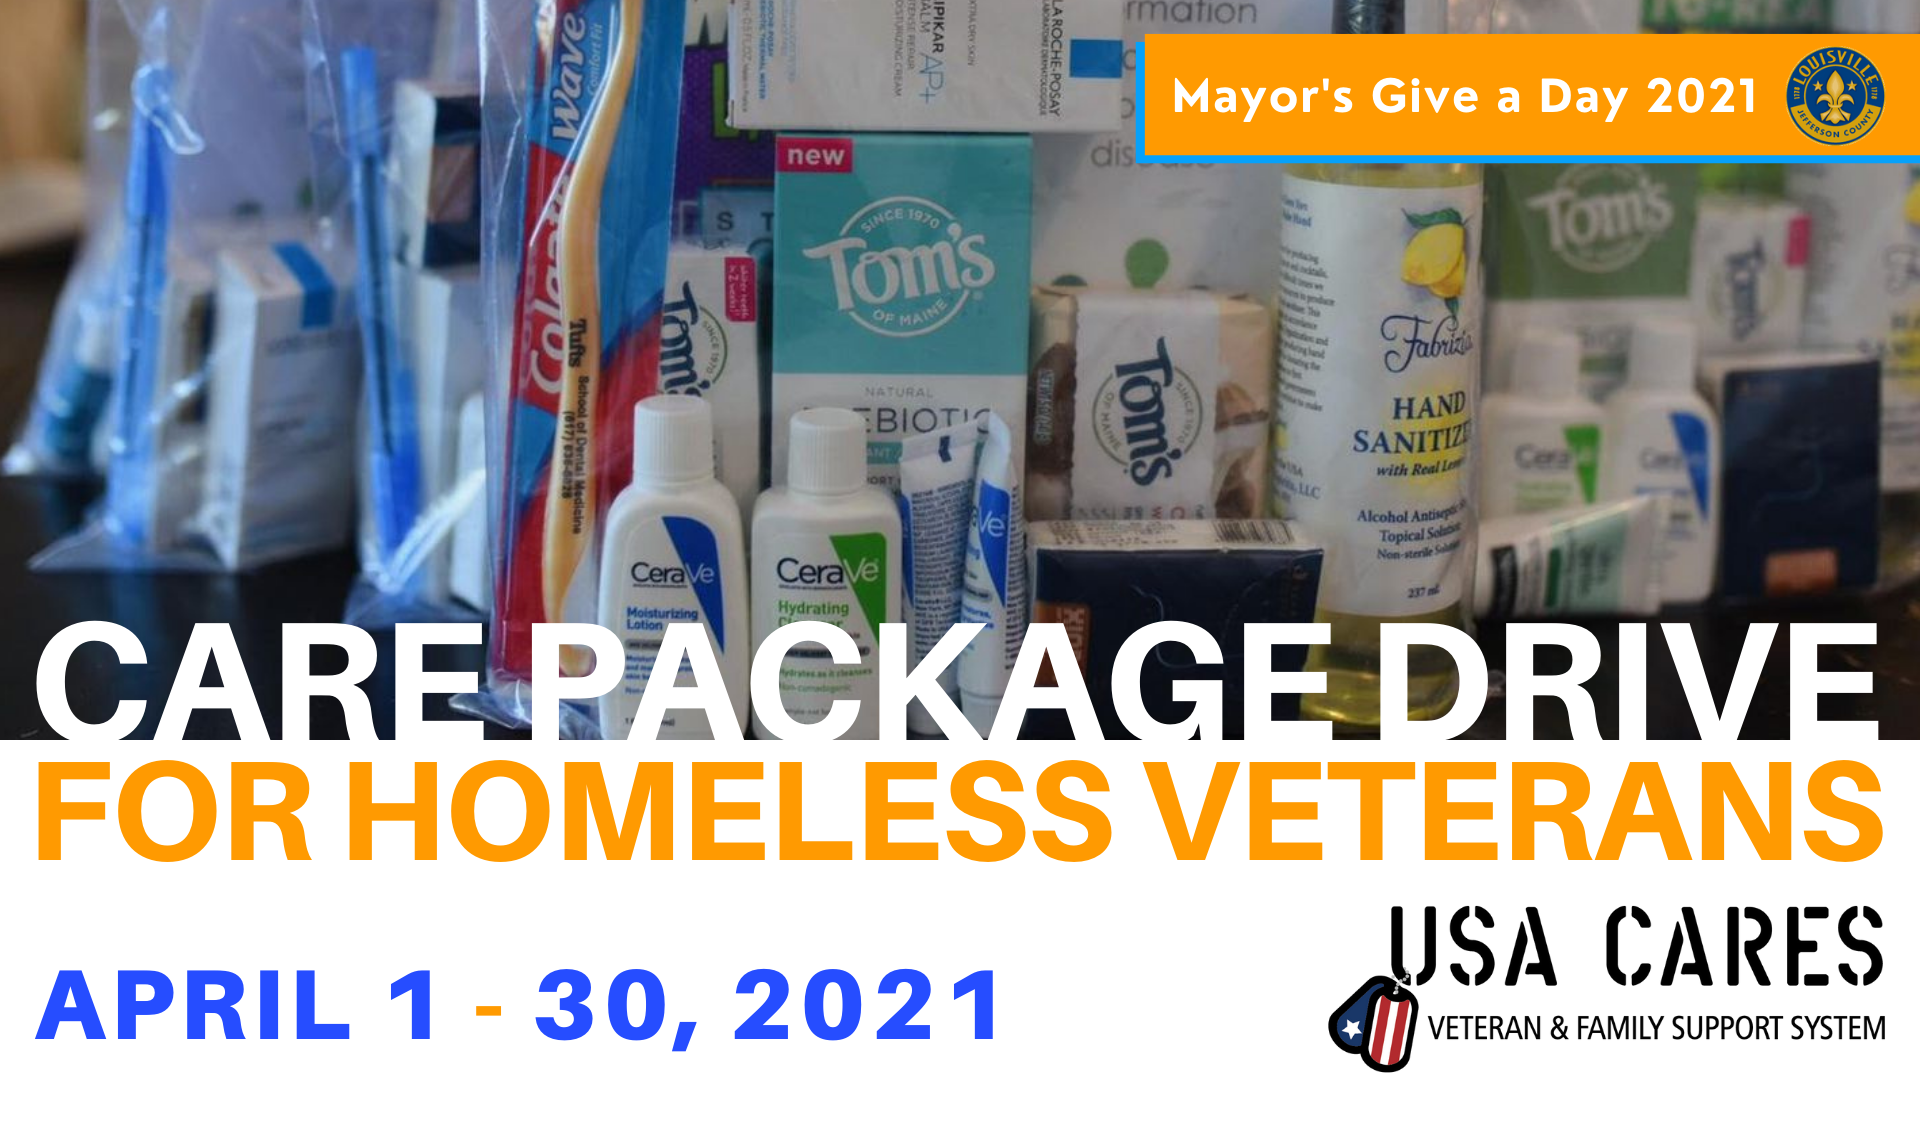 personal care items and travel size hygiene items in background, care package drive for homeless veterans, hosted by USA Cares